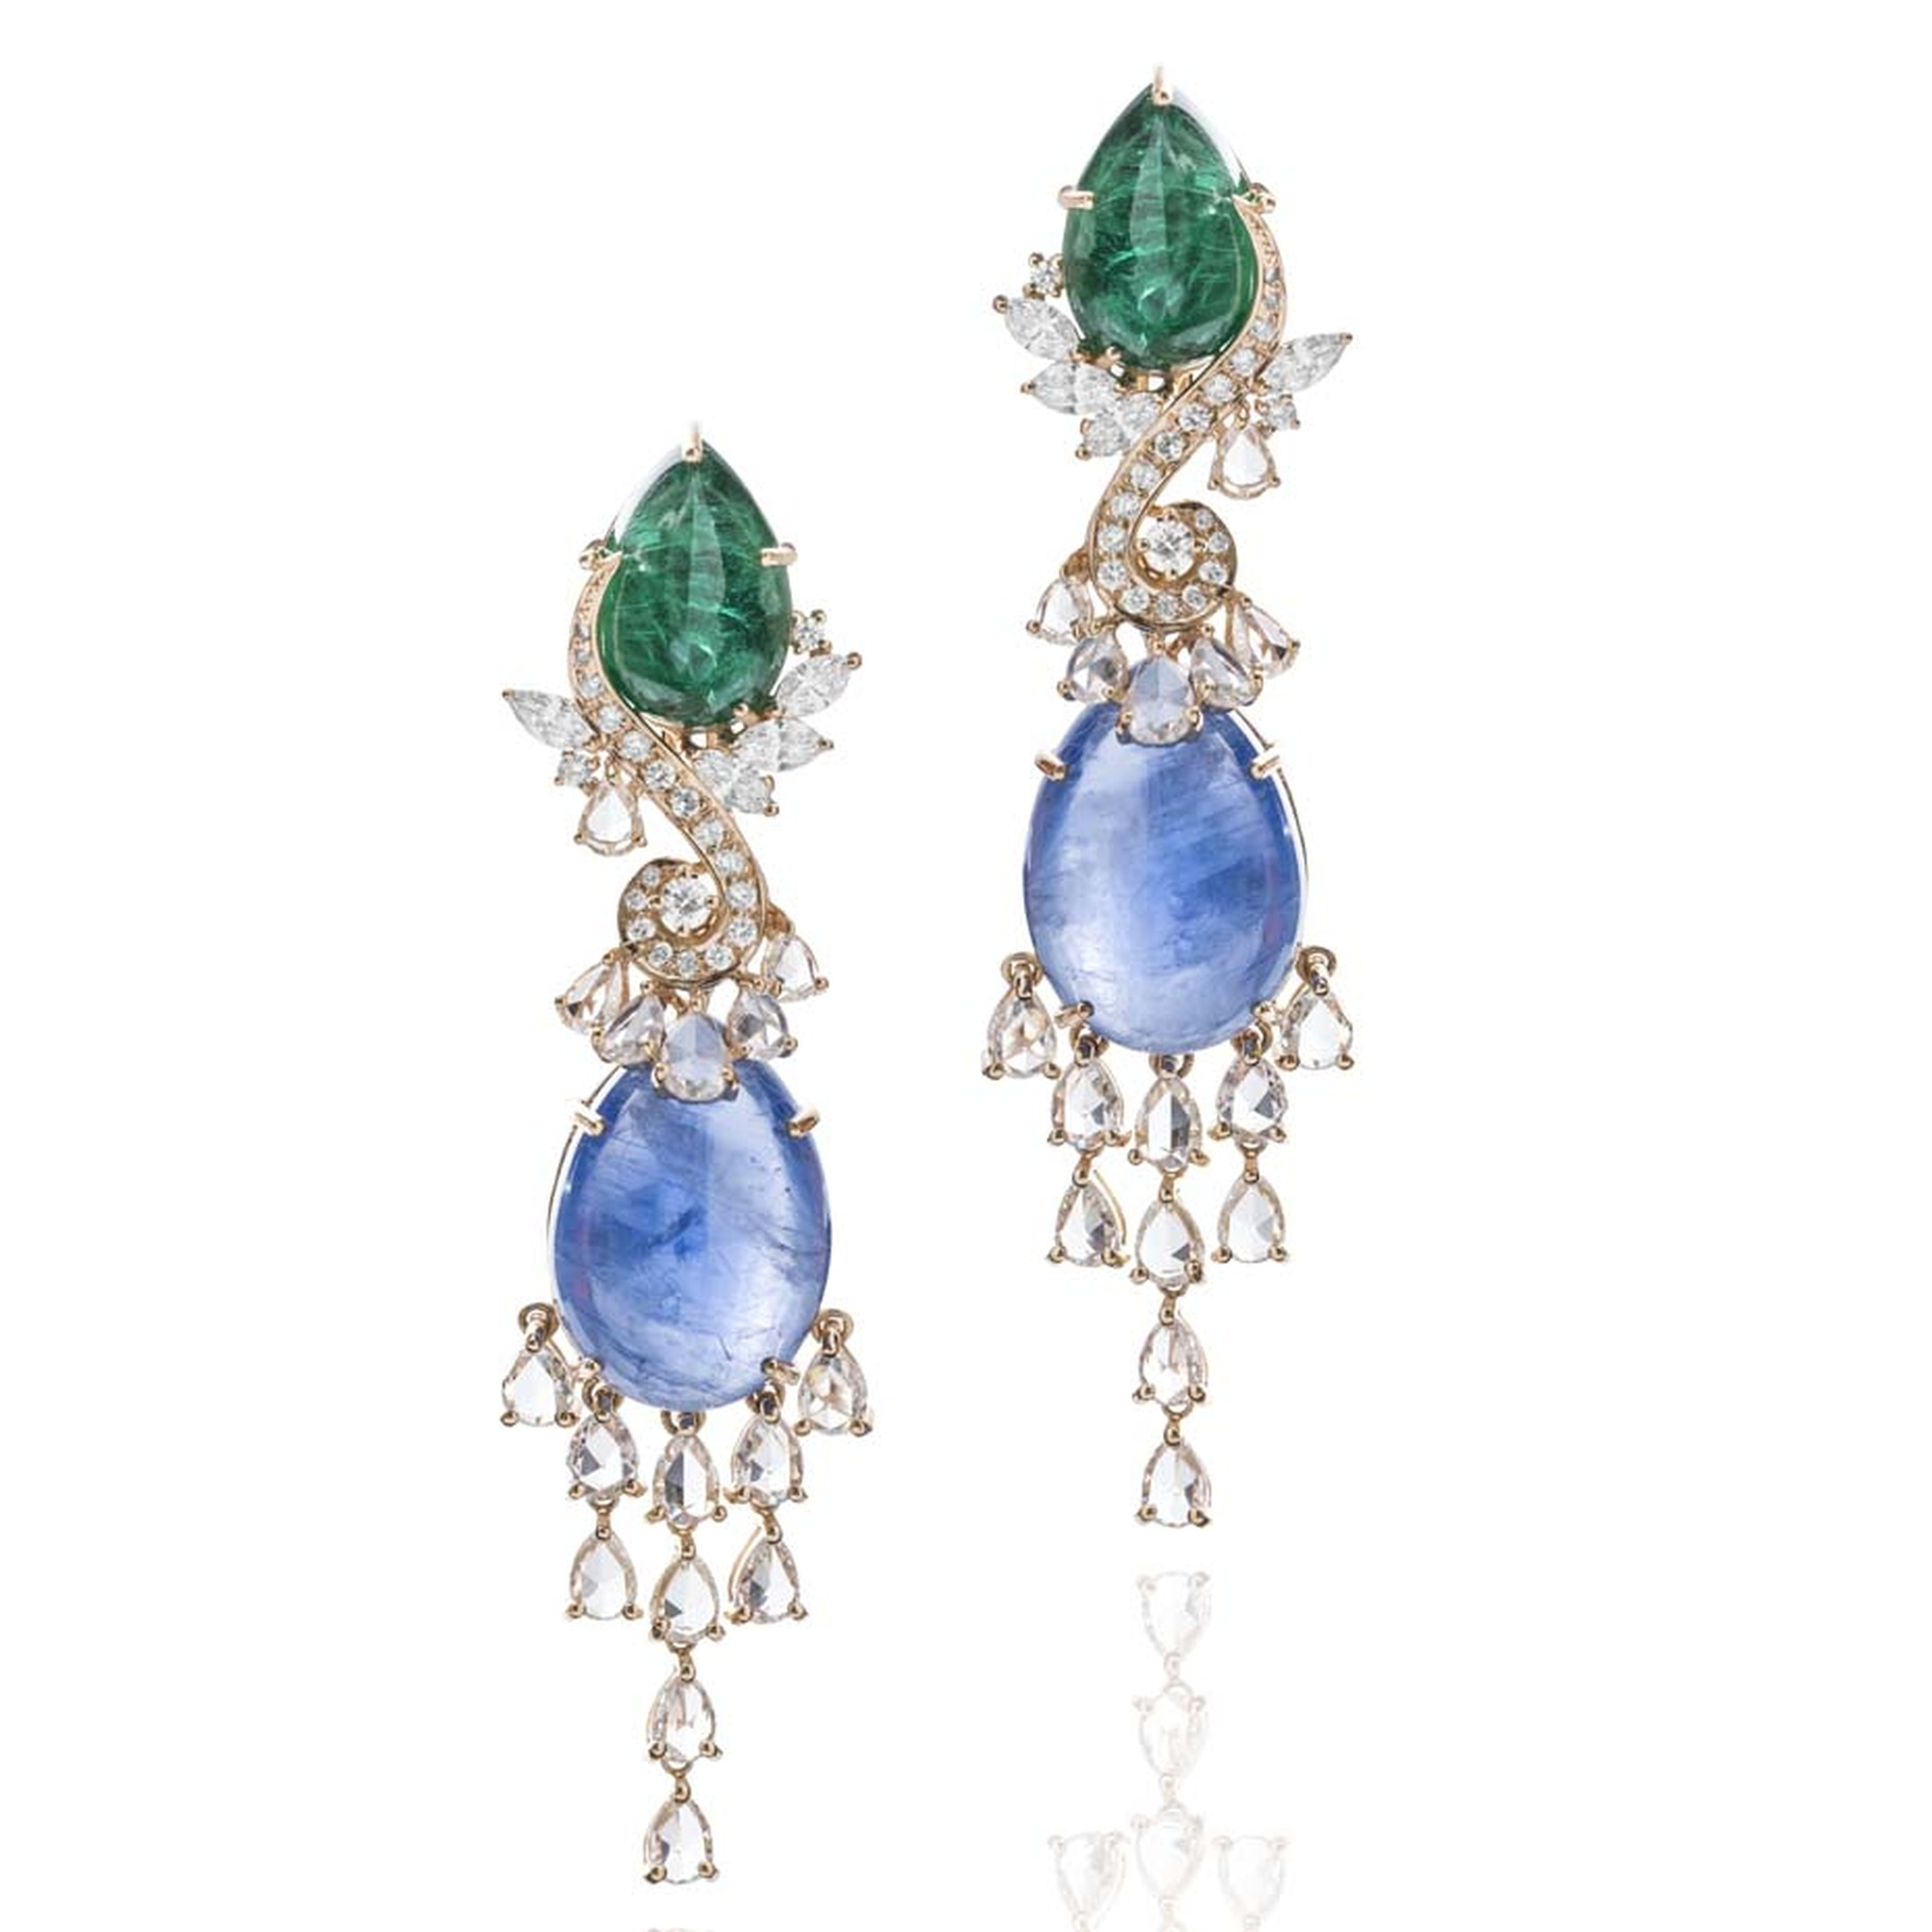 Farah Khan Le Jardin Exotique cabochon emerald, blue sapphire and diamond earrings in yellow gold.